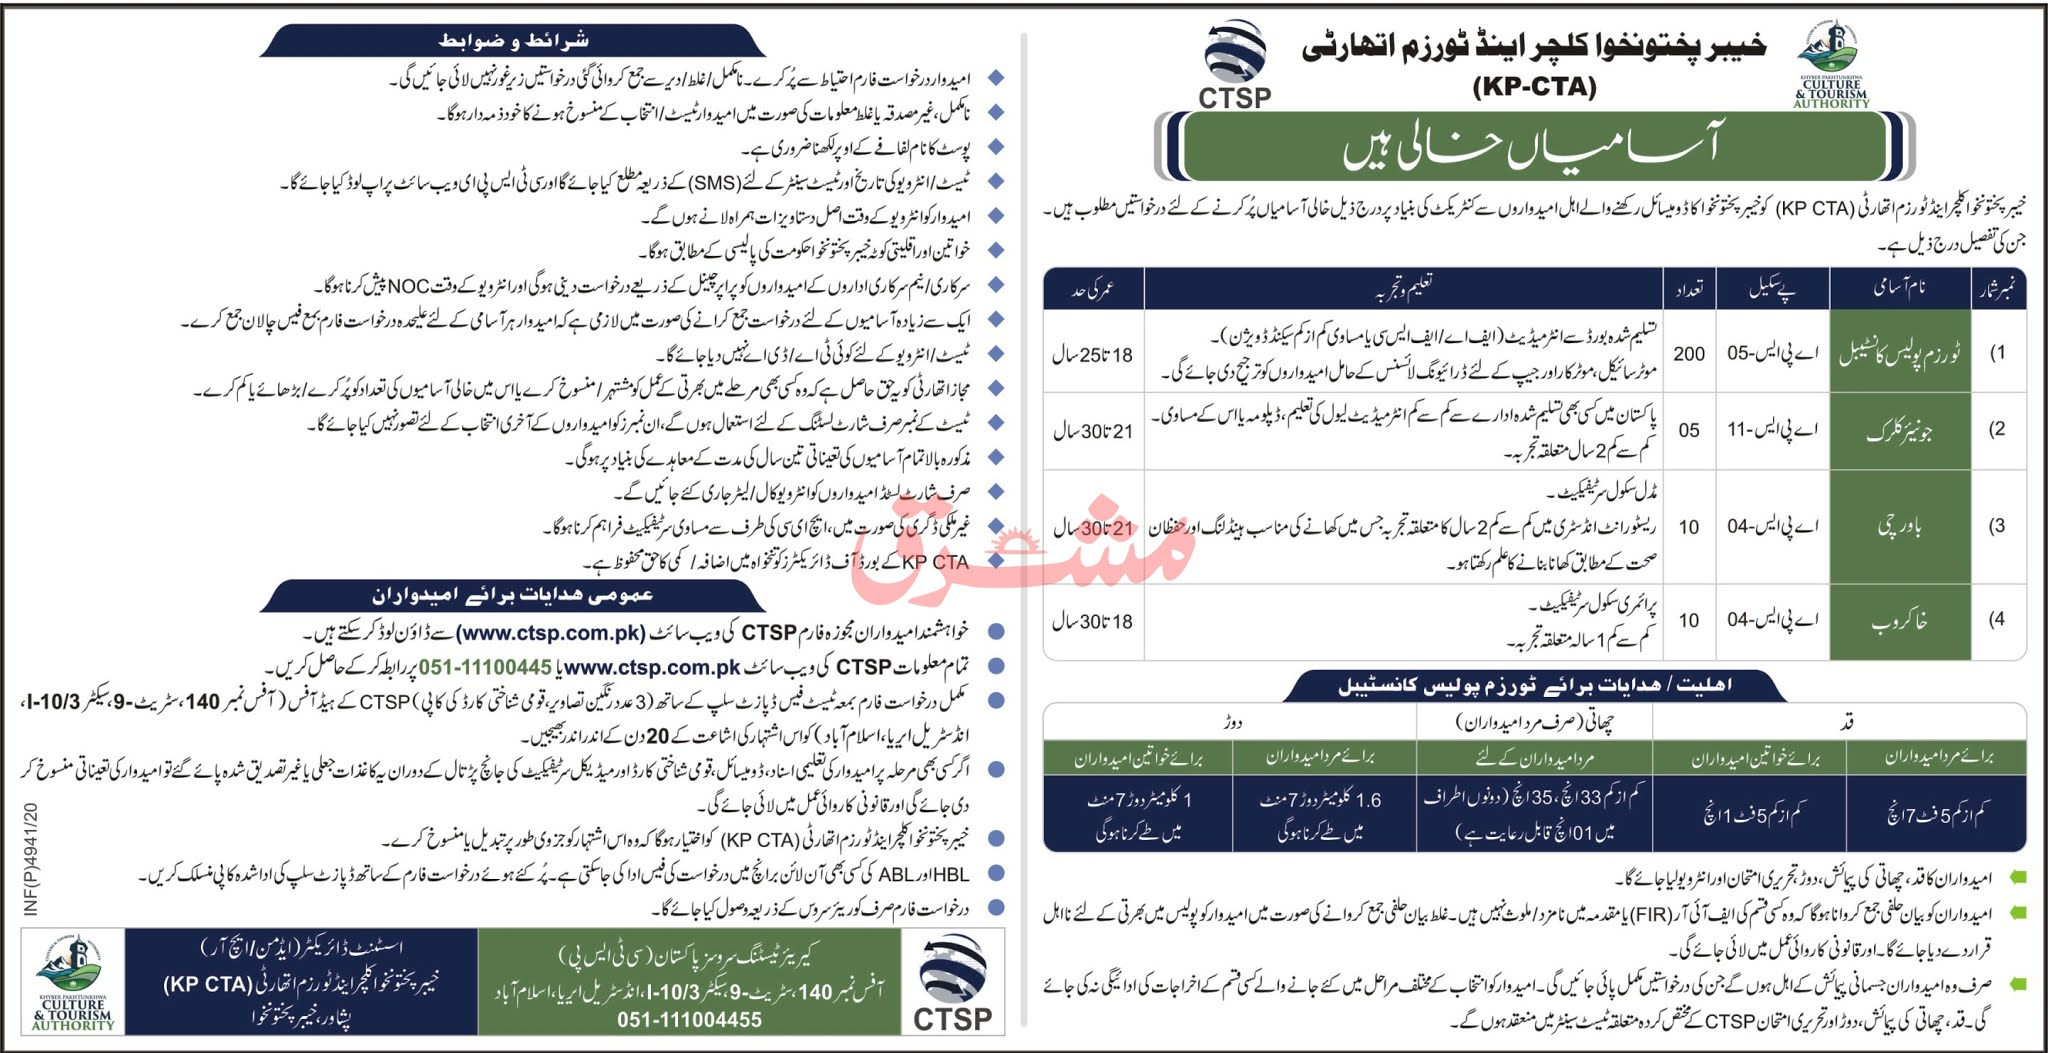 Tourism Police Jobs - Police Department Jobs - Culture & Tourism Authority KPCTA Jobs - Download Tourism Police Job Application - www.ctsp.com.pk